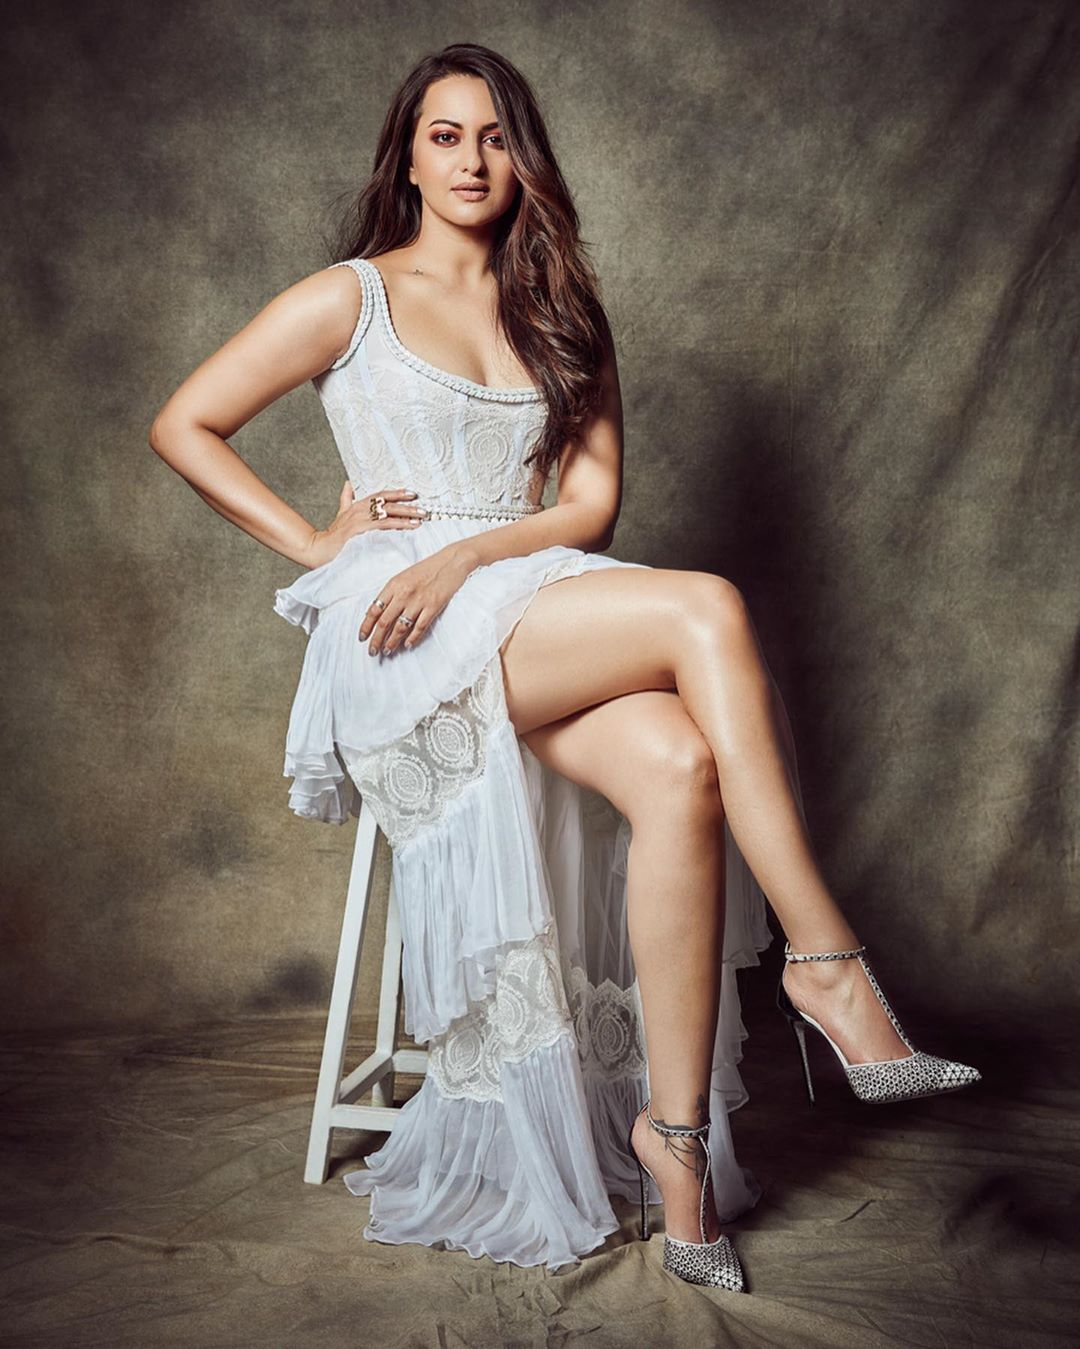 Sonakshi-Sinha-Wallpapers-Insta-Fit-Bio-6